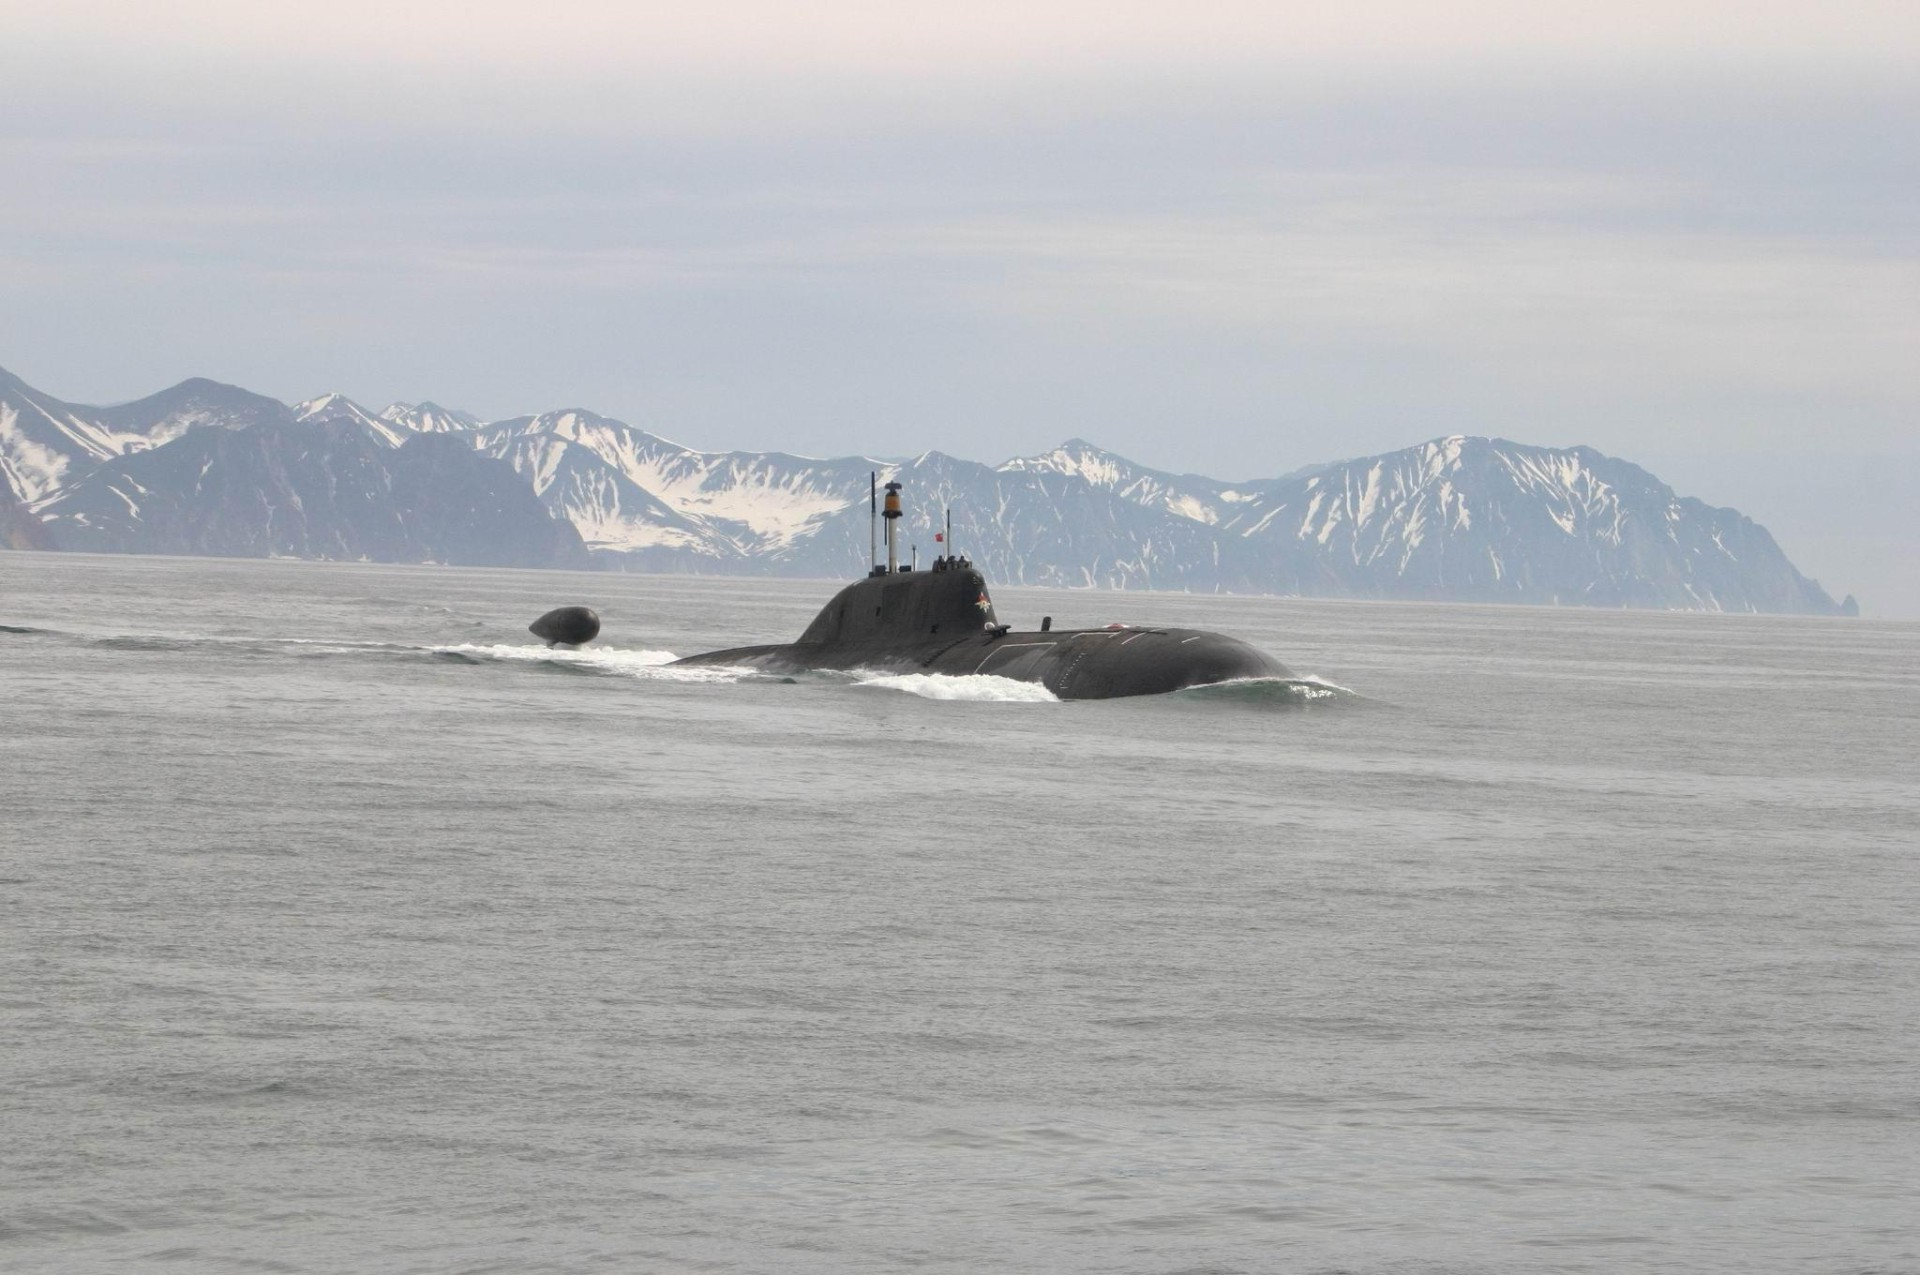 submarines water snow sea ocean landscape winter mountain seashore frosty ice lake watercraft fog beach travel cold daylight vehicle